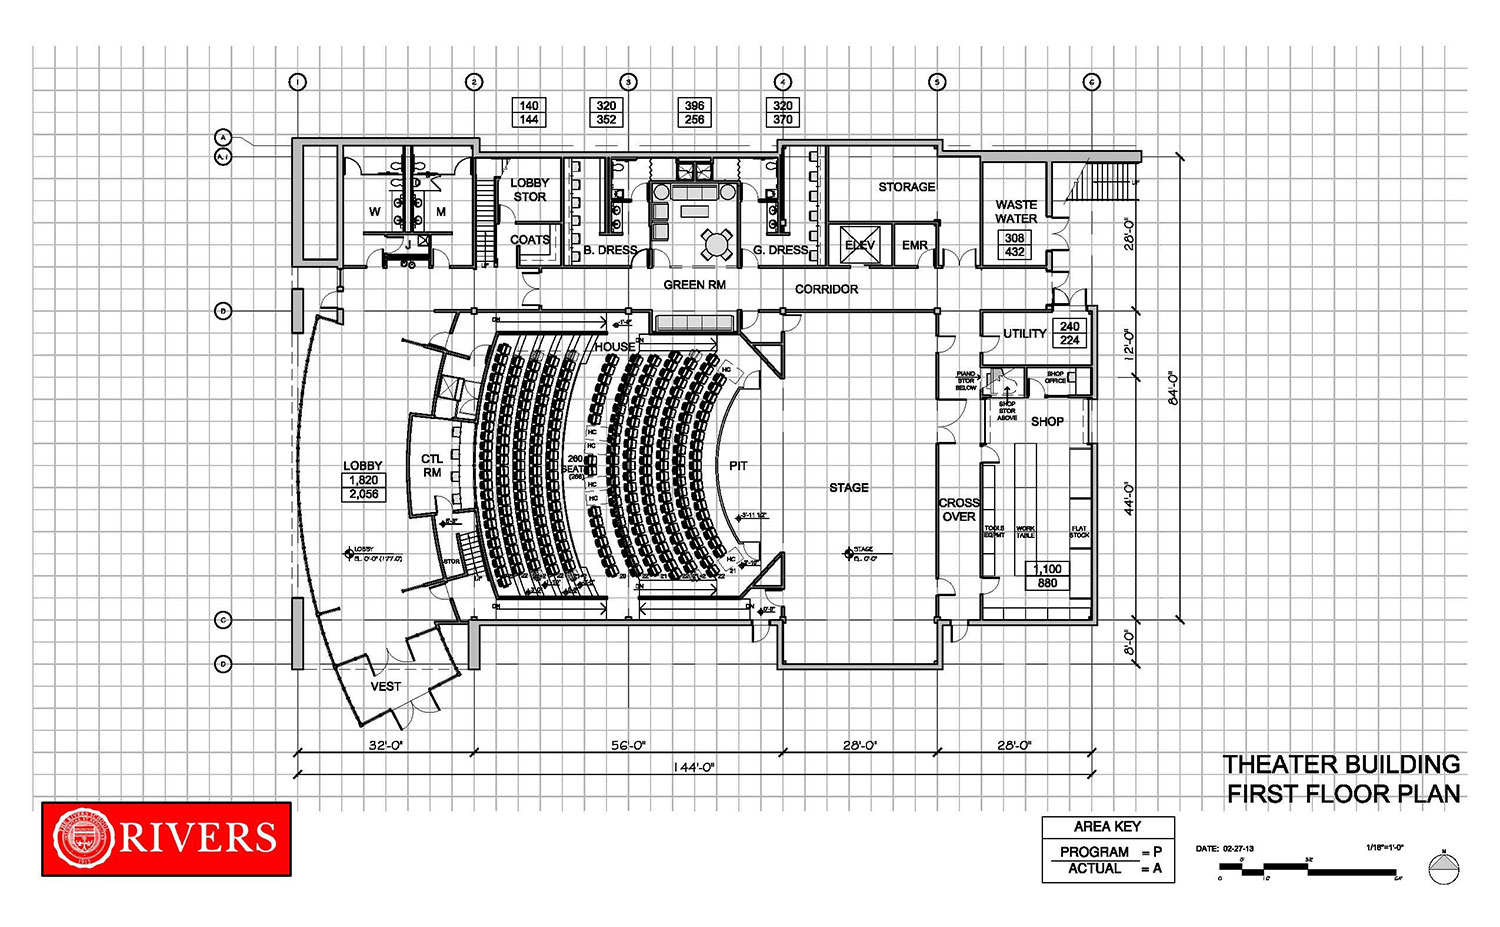 X-PLAN-1-Layout1-11X17.jpg